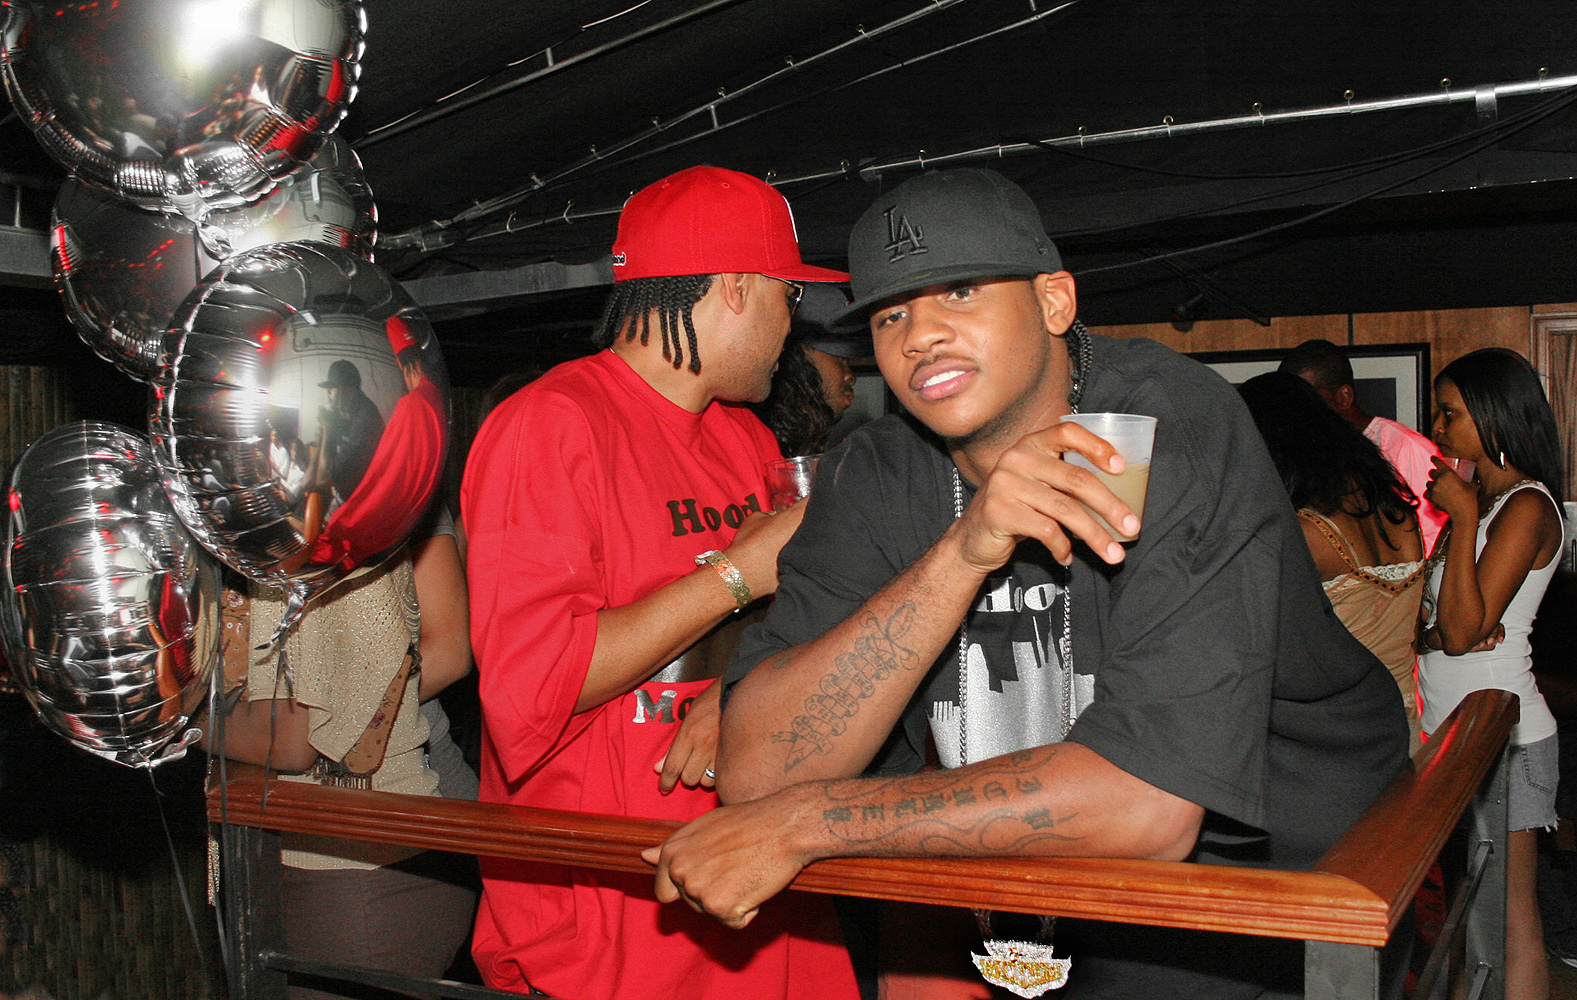 carmelo anthony clubbing chilling drinking 1000